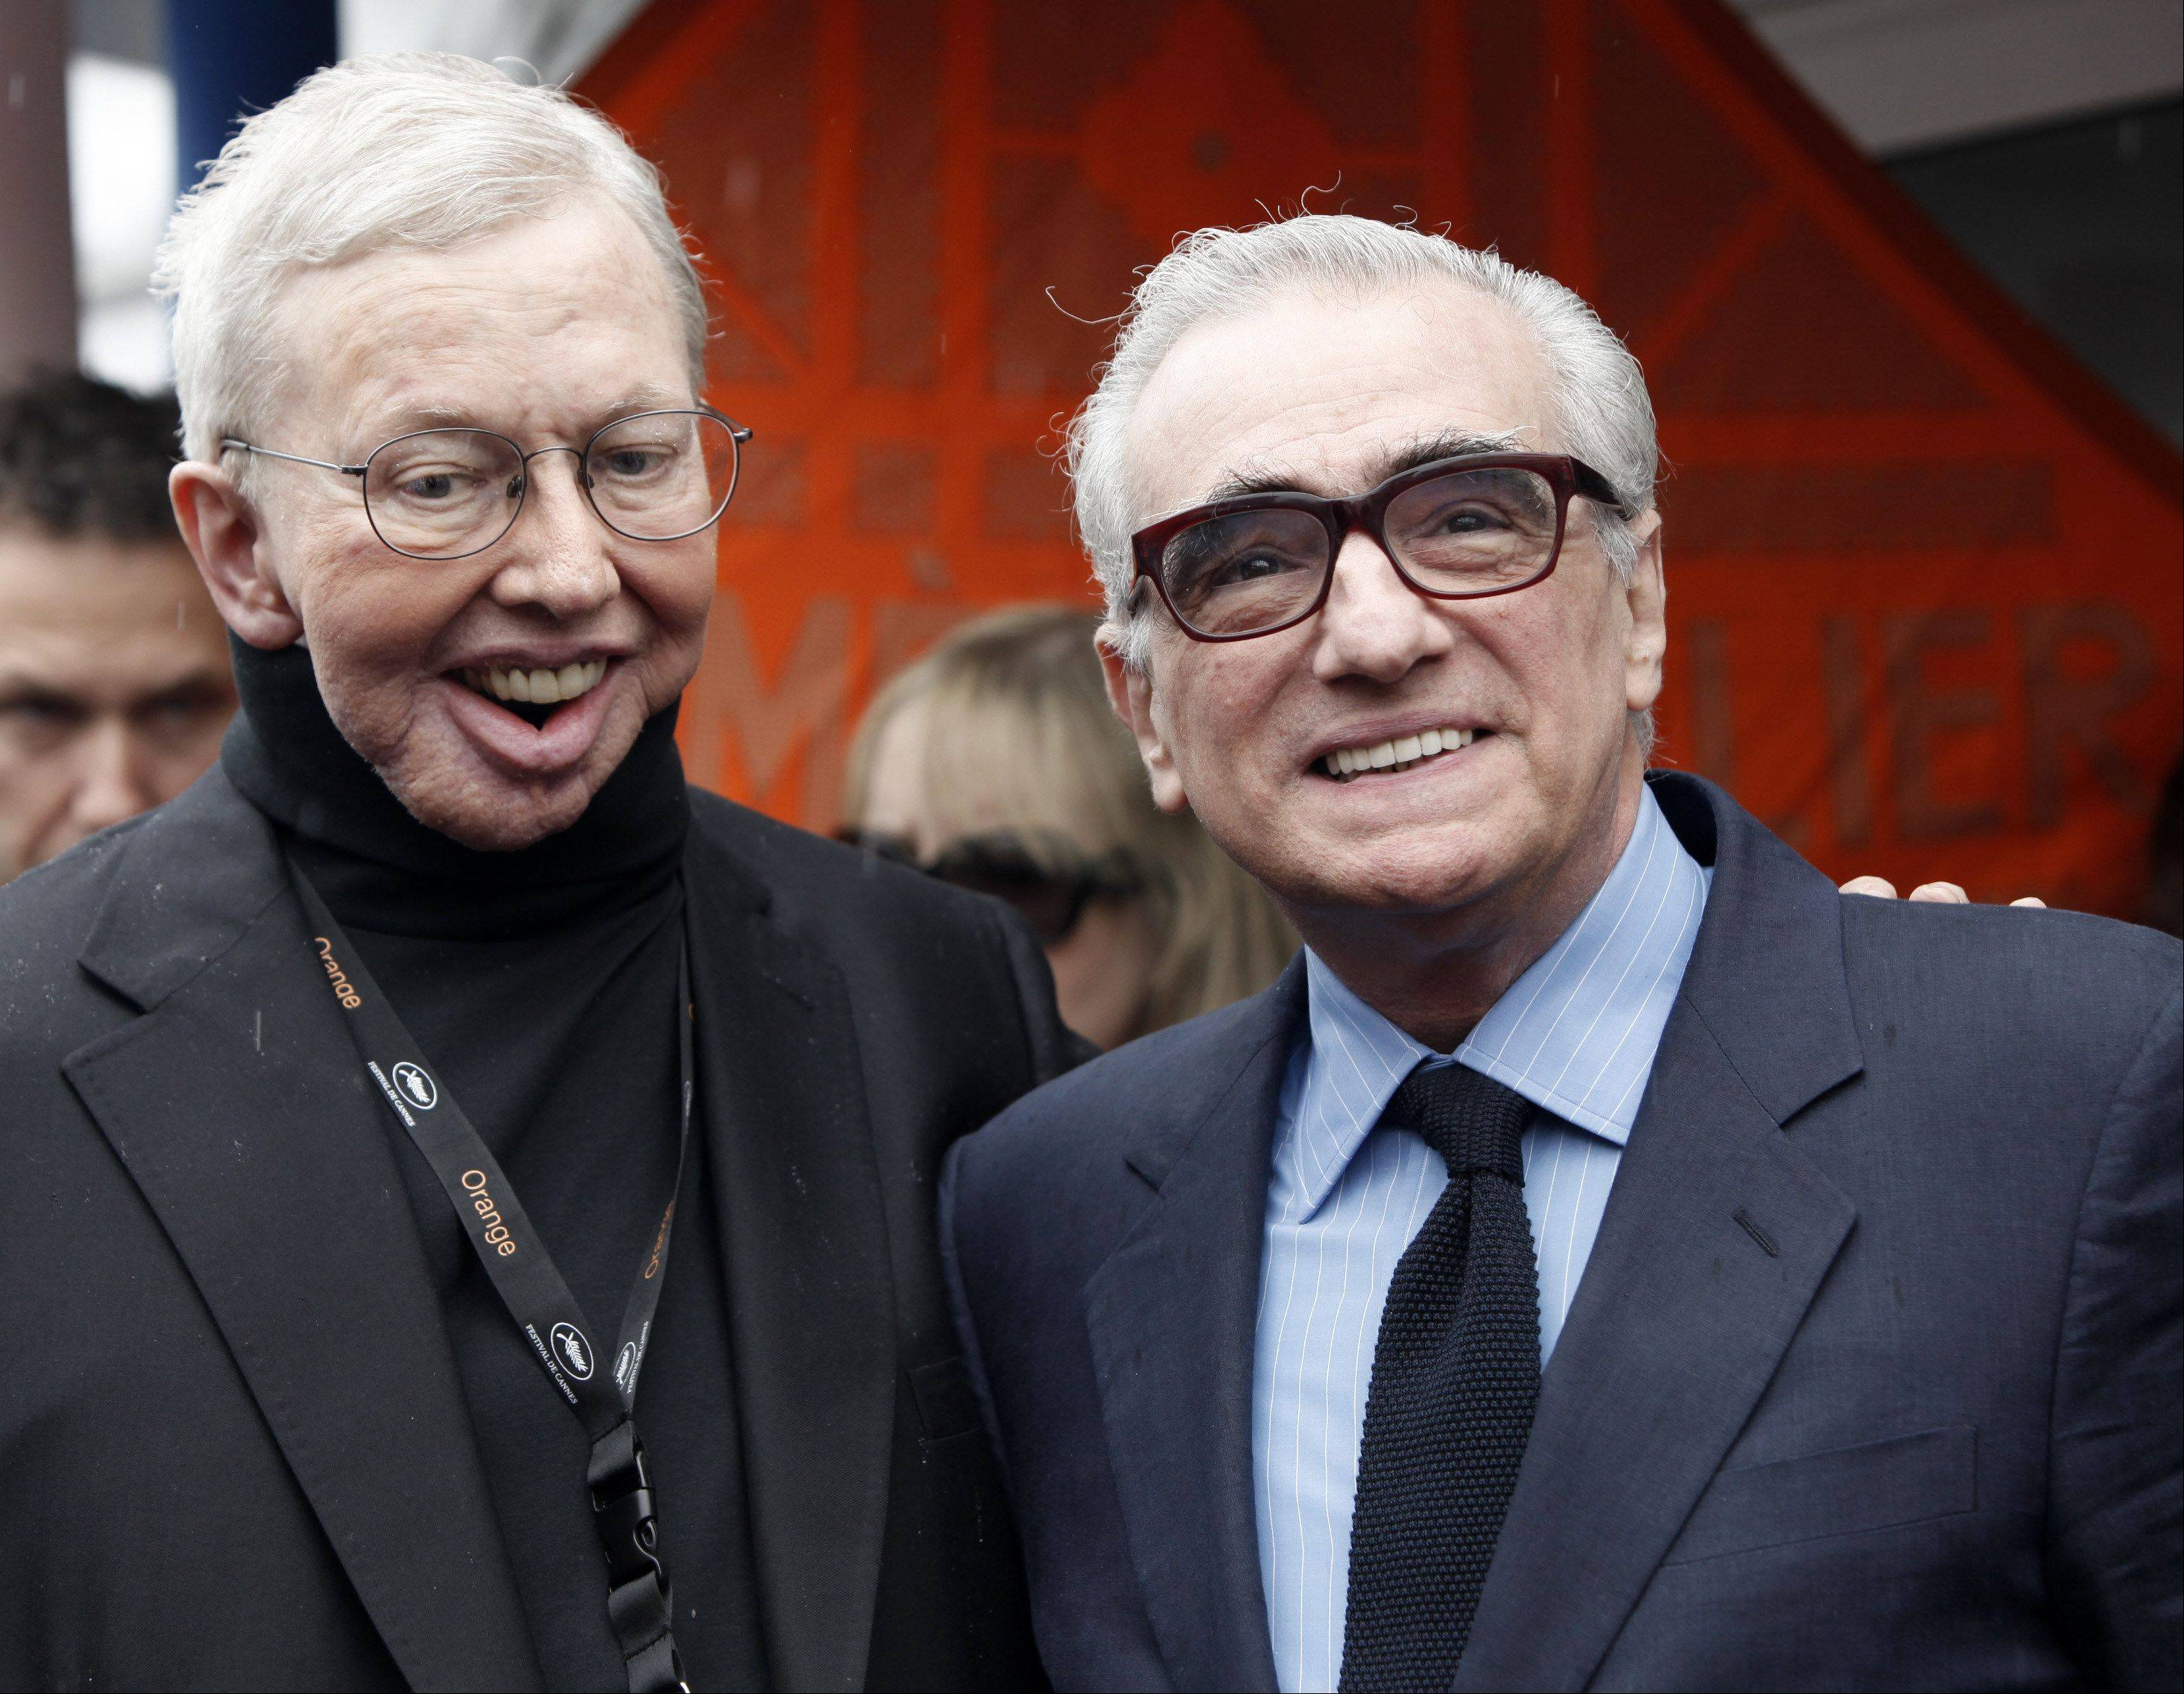 U.S. film critic Roger Ebert, left, and U.S. film director Martin Scorsese during the 62nd International film festival in Cannes, southern France, Friday, May 15, 2009.